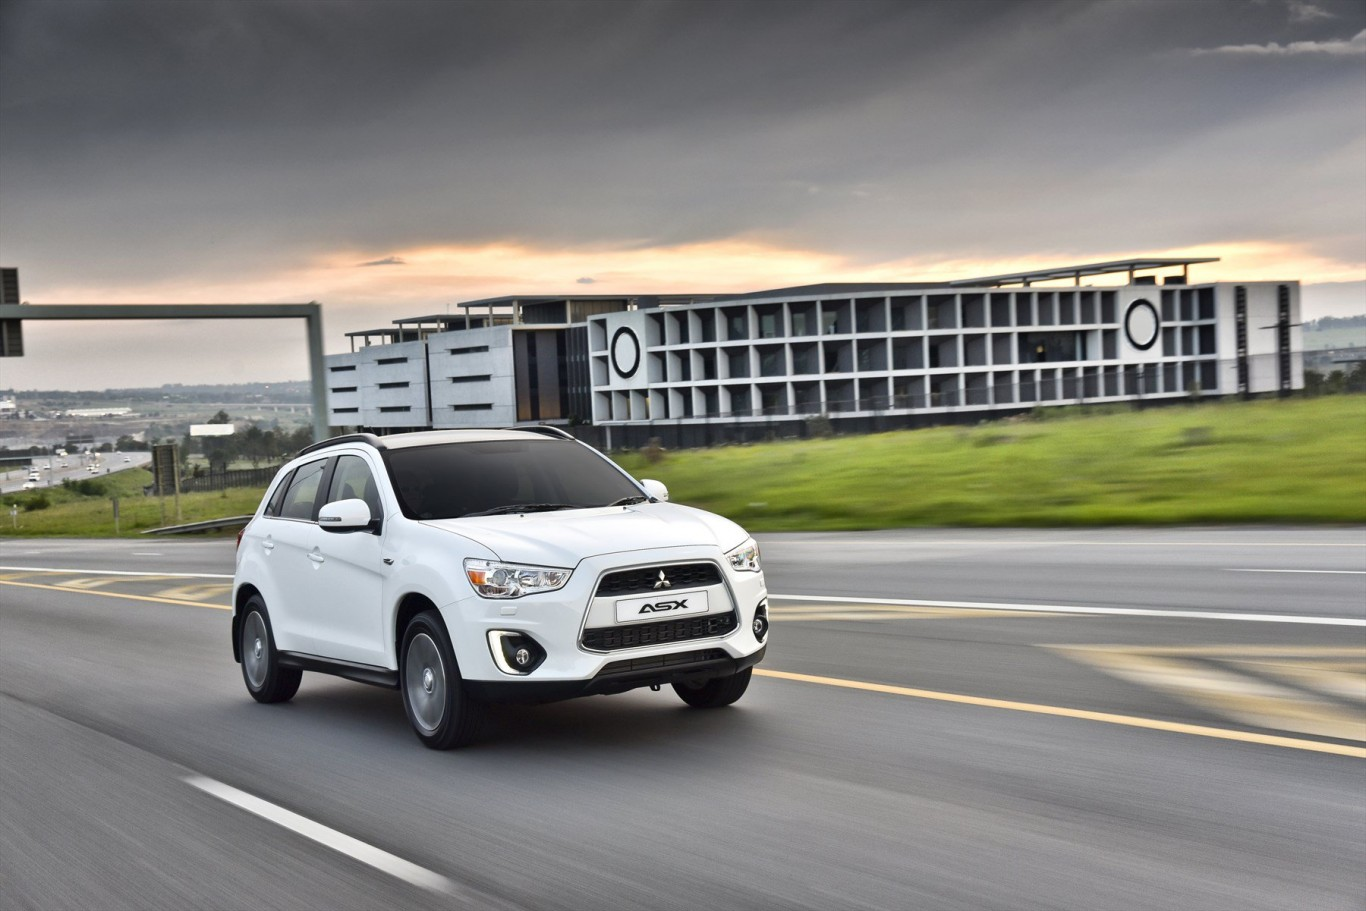 Mitsubishi Motors reaffirms support for Wheel Well and car seat safety